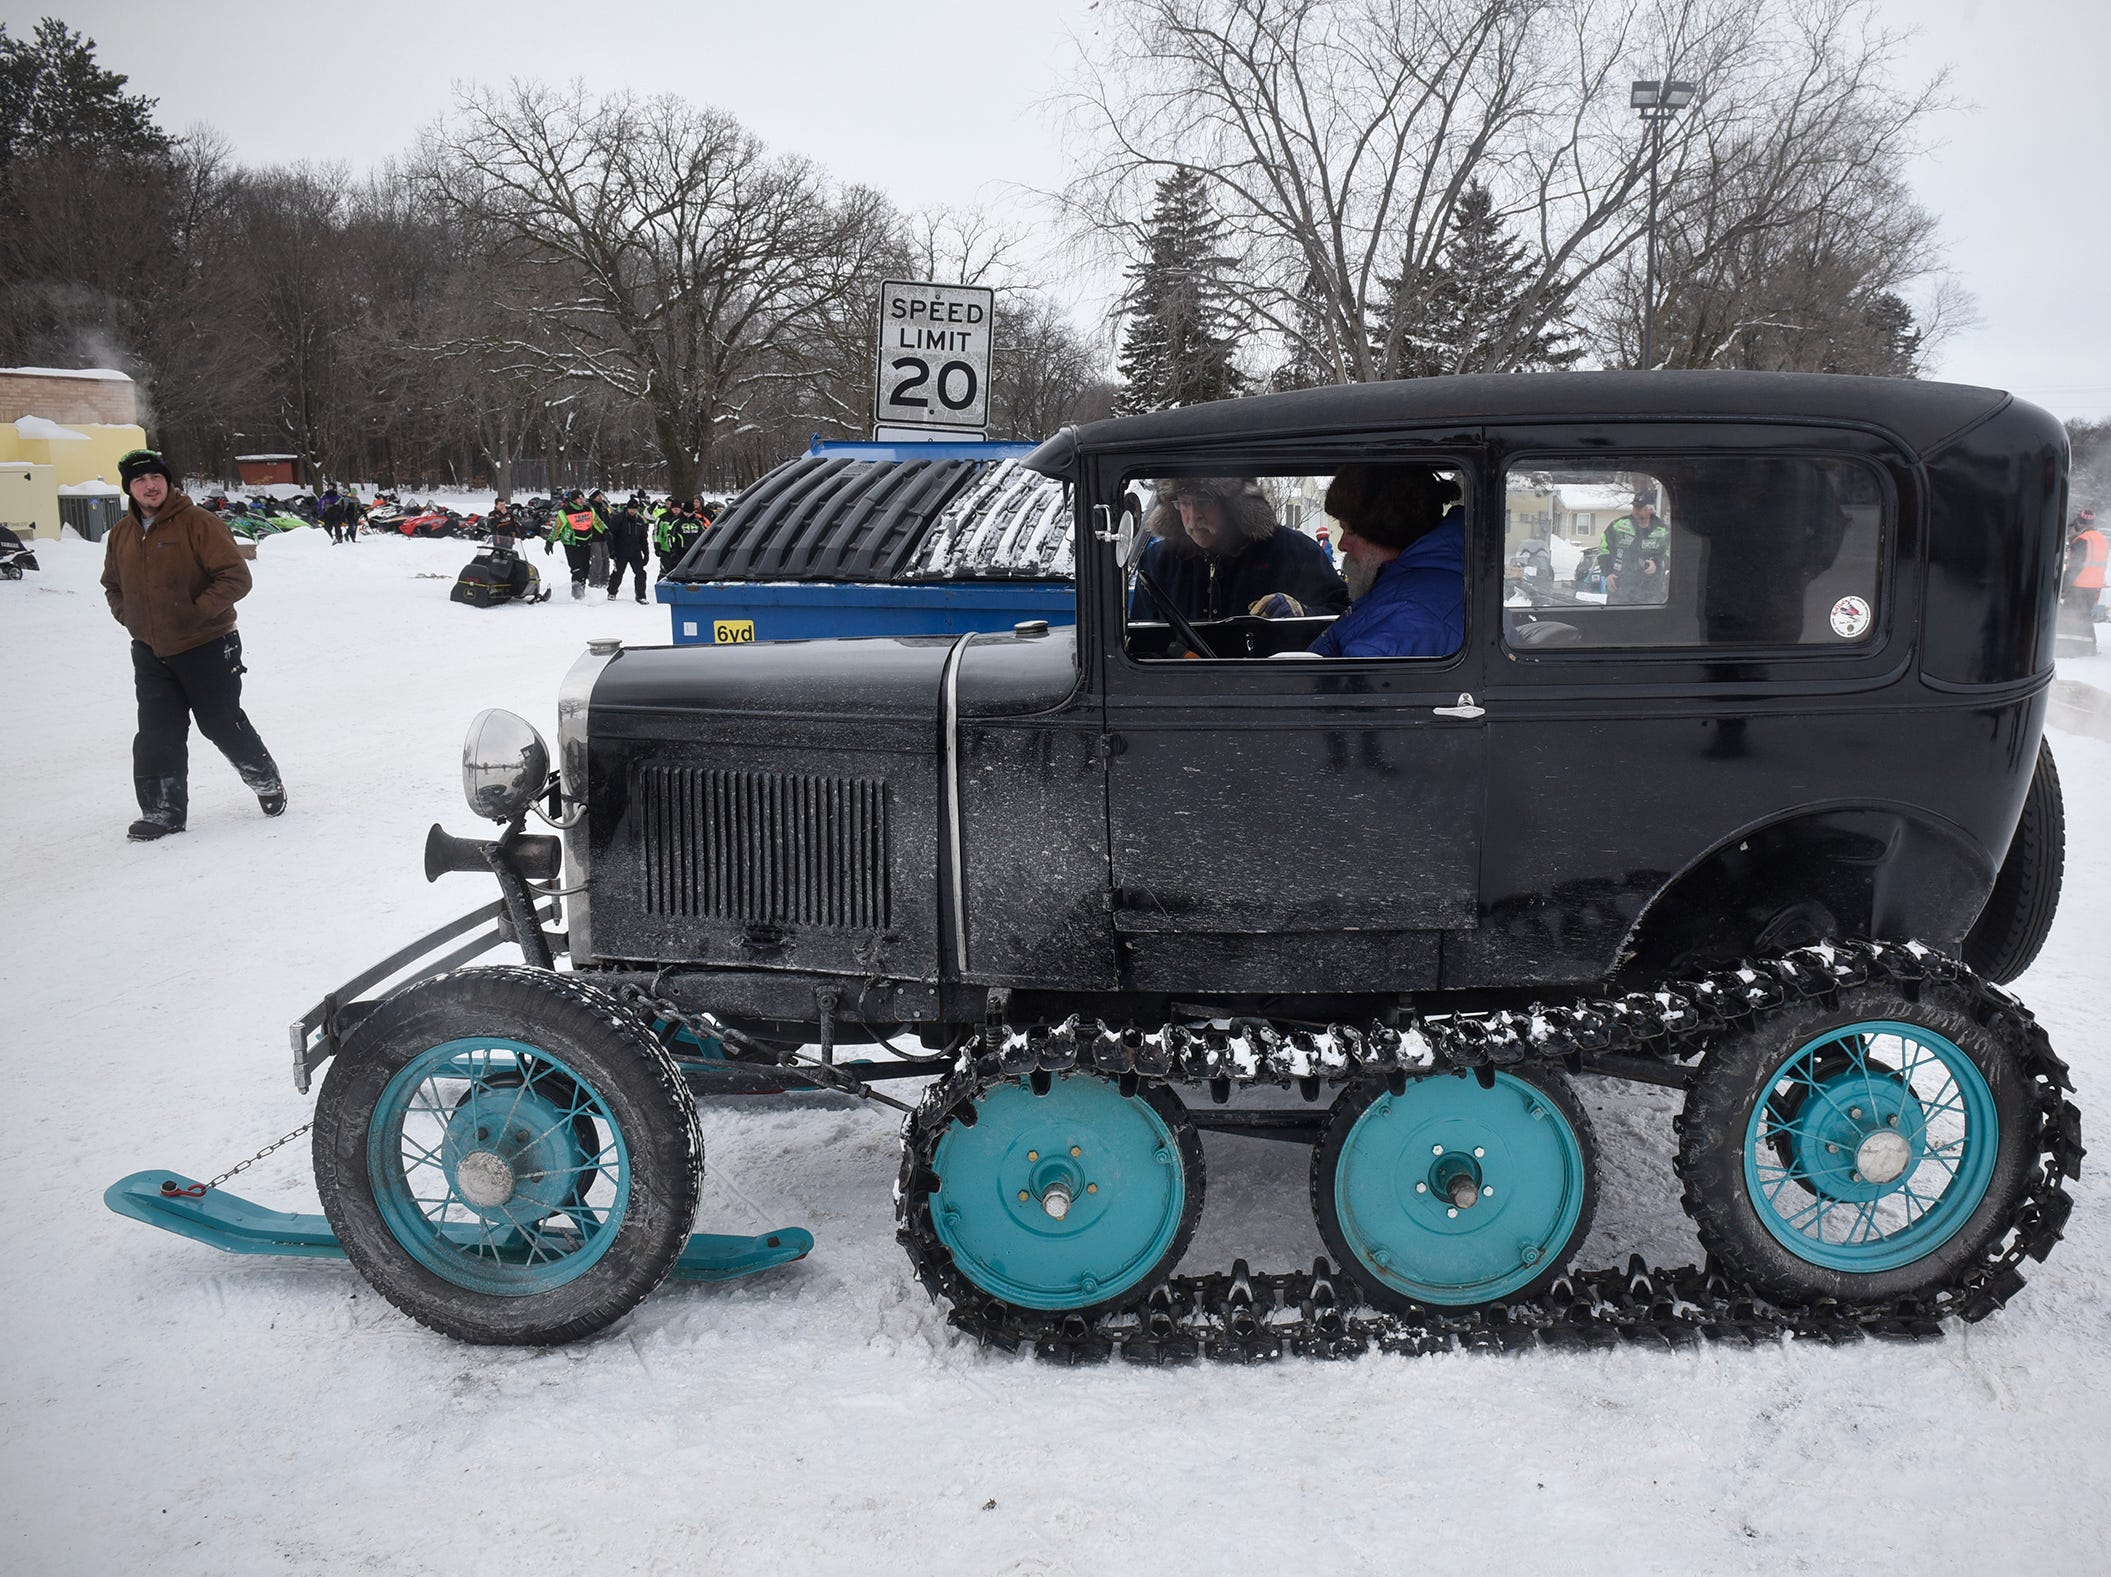 Jasper Bond starts his 1930 Model A Ford with a Super Snowbird kit installed Saturday, Feb. 9, during the St. Stephen River Runners snowmobile club's 50th Anniversary Celebration in St. Stephen.  The vehicle was originally used to carry the U.S. Mail in the winter.